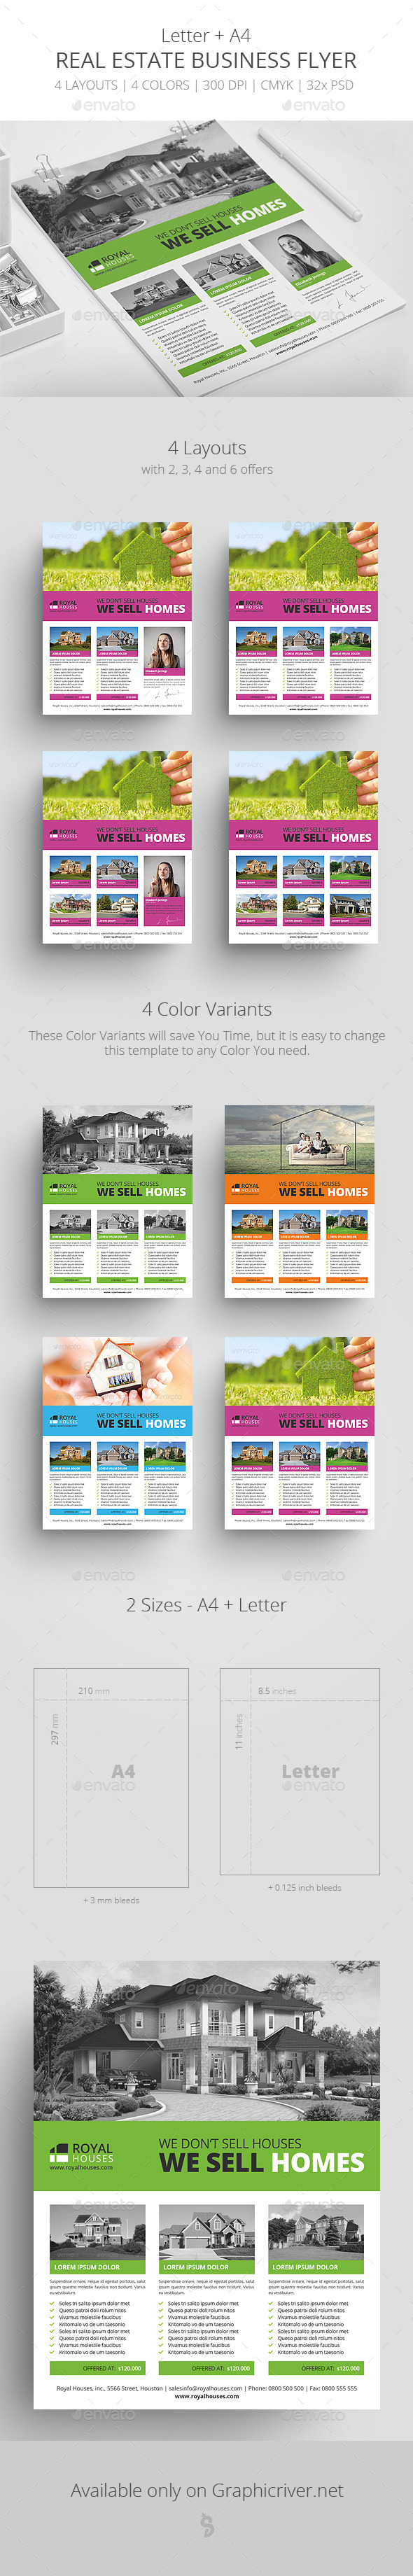 Real Estate Business Flyer Template 1